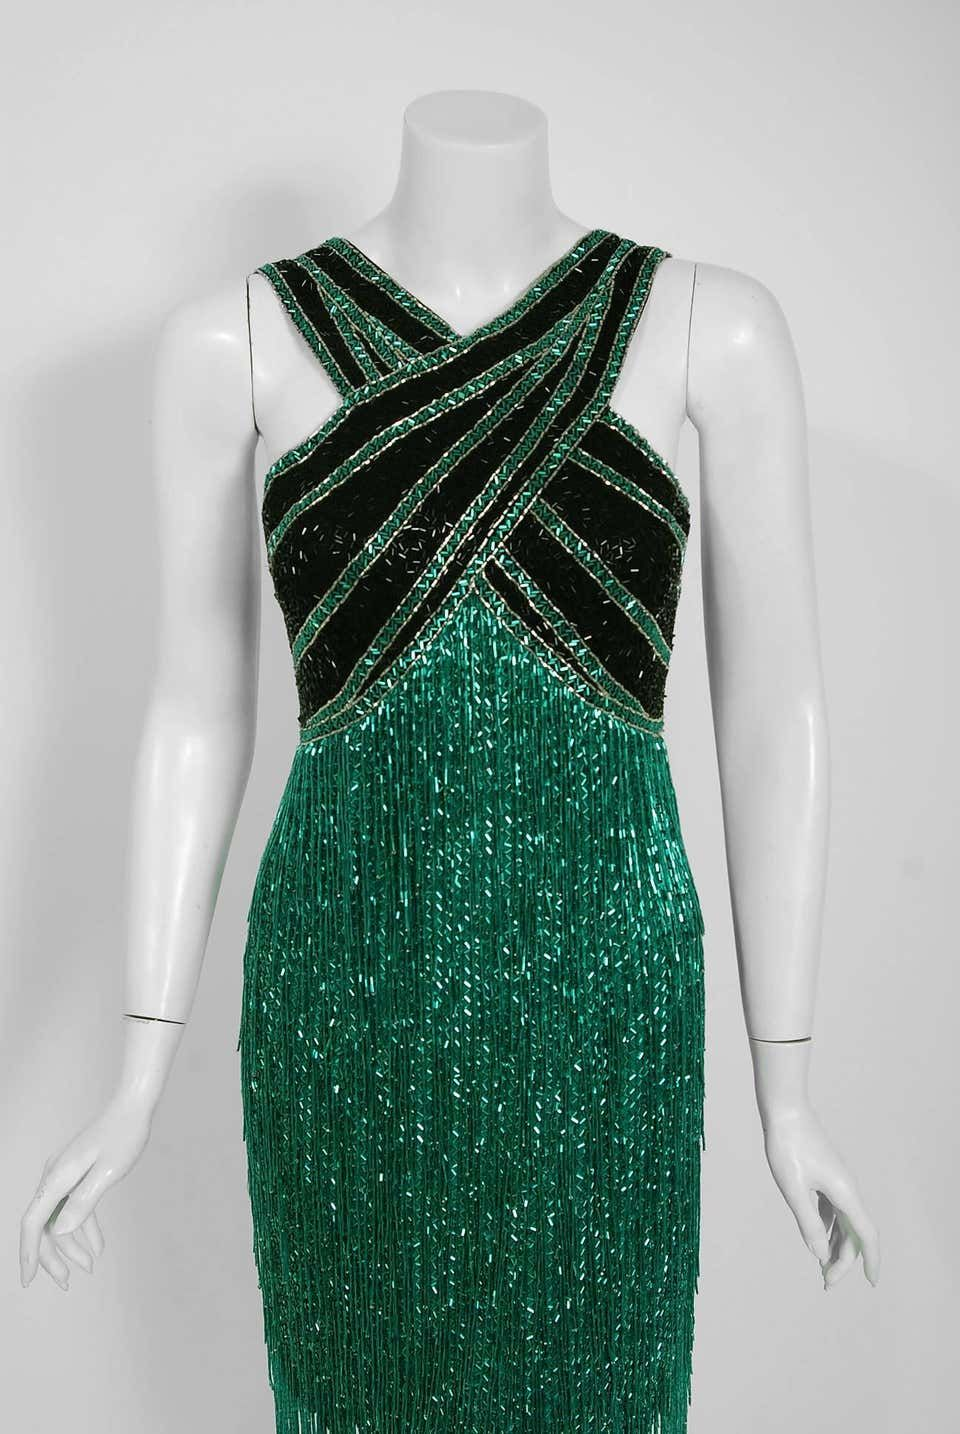 1979 Bob Mackie Couture Teal-Green and Black Beaded Fringe Backless Disco Dress #backlesscocktaildress